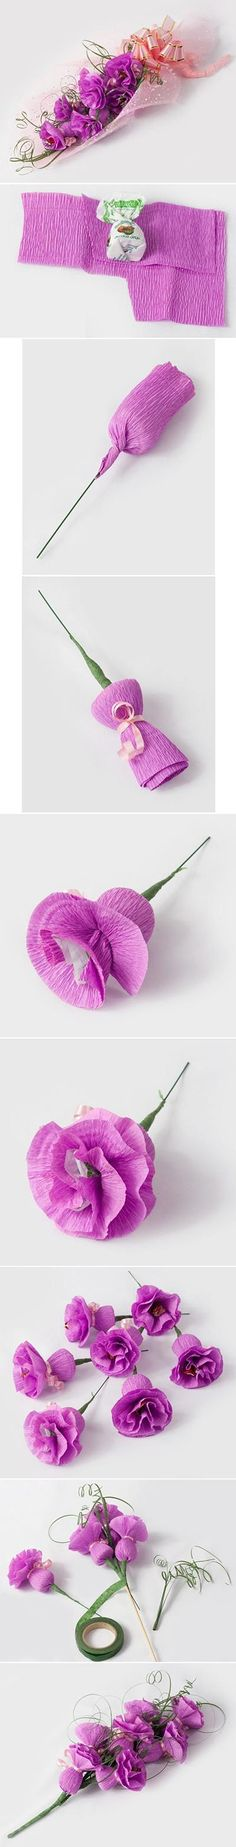 Diy Beautiful Purple Flower | DIY  Crafts Tutorials